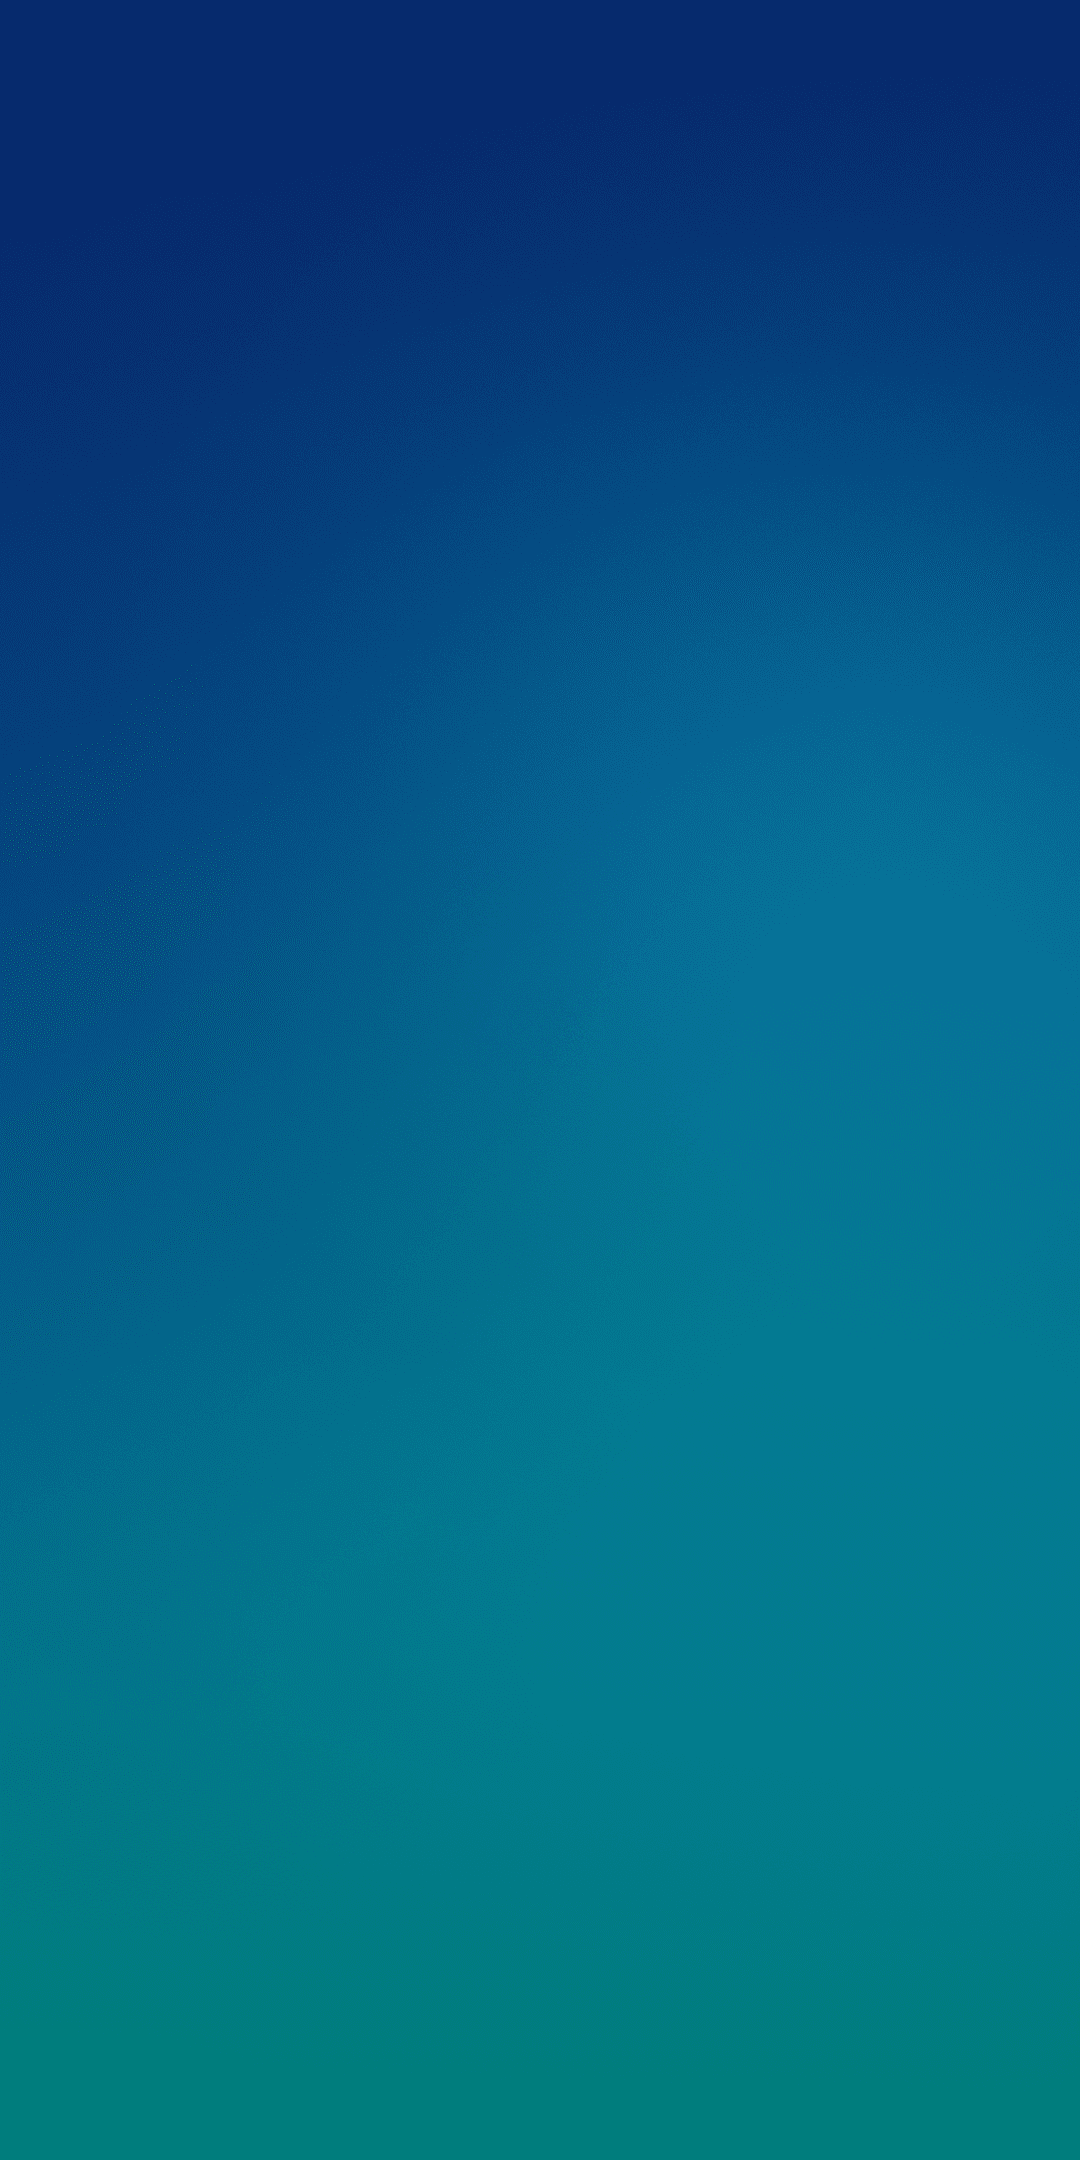 Lenovo S5 Stock Wallpapers | Download 31